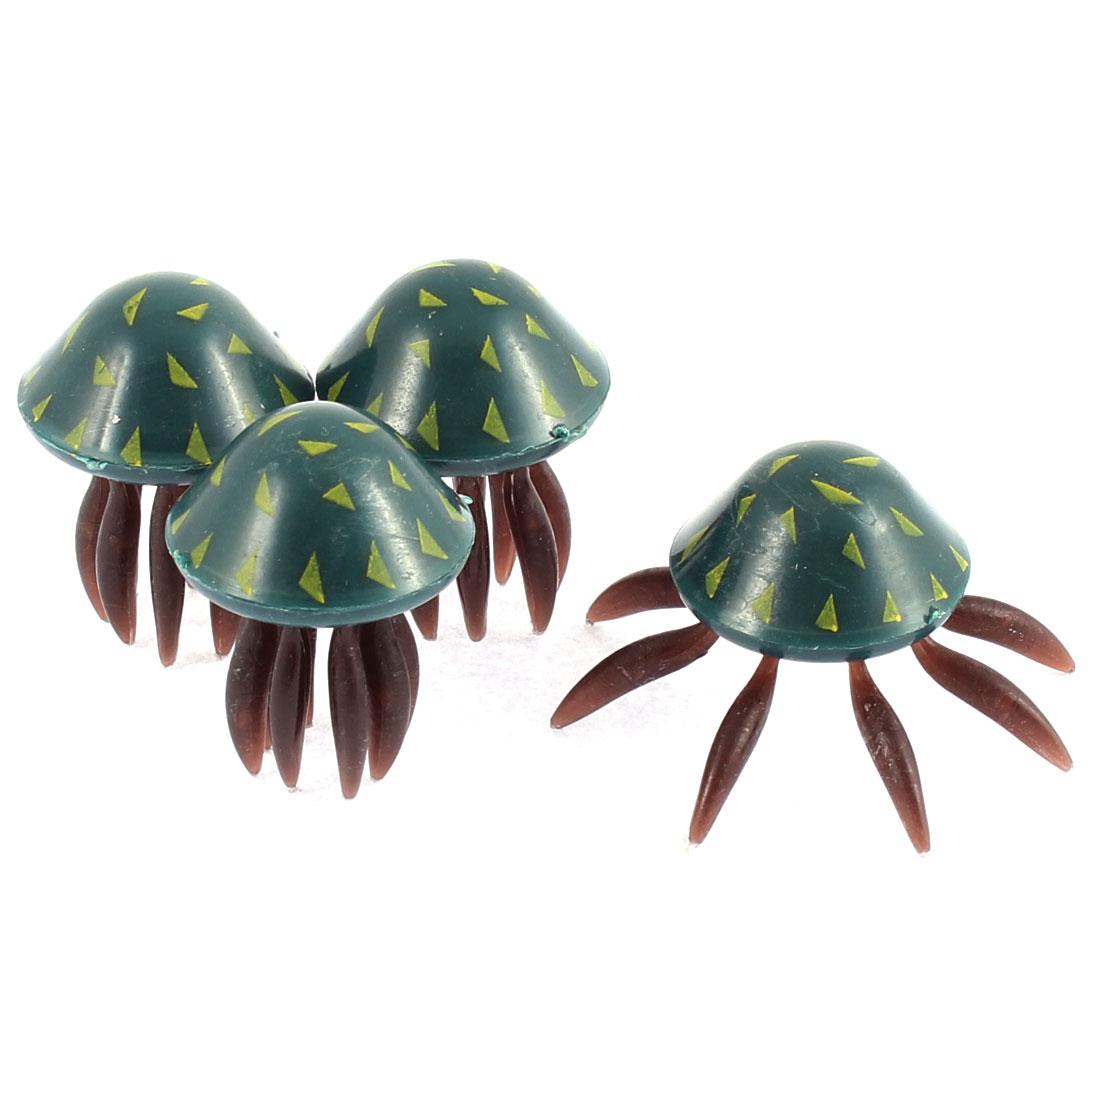 4 Pcs Navy Blue Chocolate Color Fish Tank Plastic Artificial Jellyfish Ornament